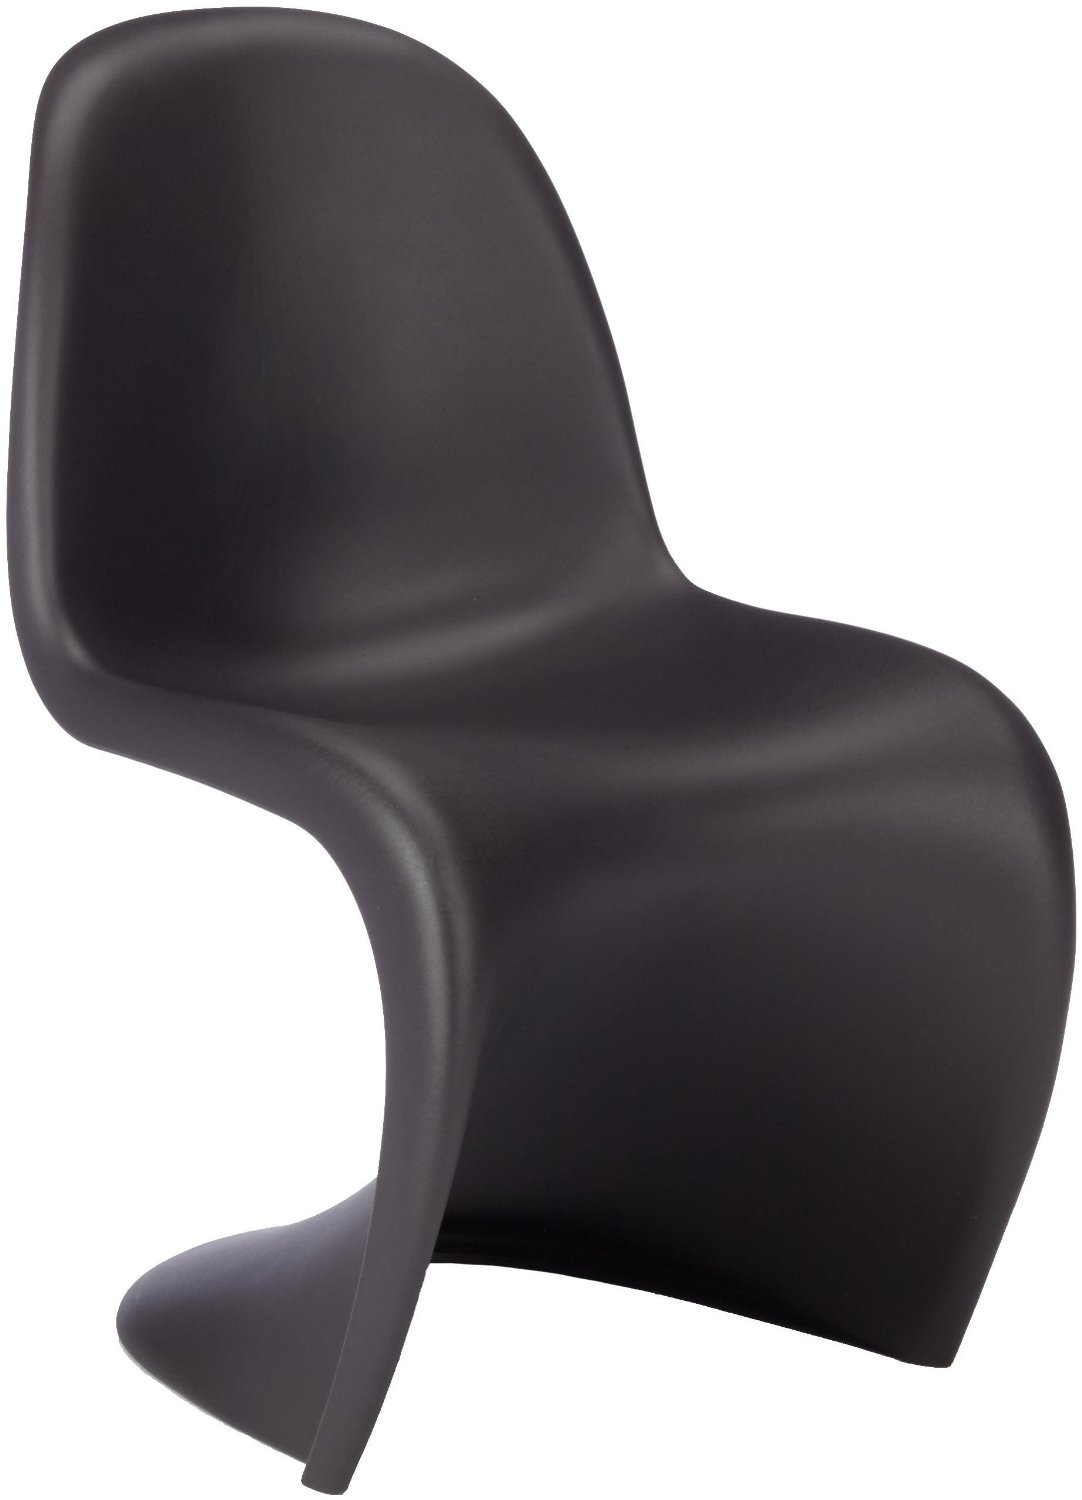 la chaise panton de chez vitra. Black Bedroom Furniture Sets. Home Design Ideas